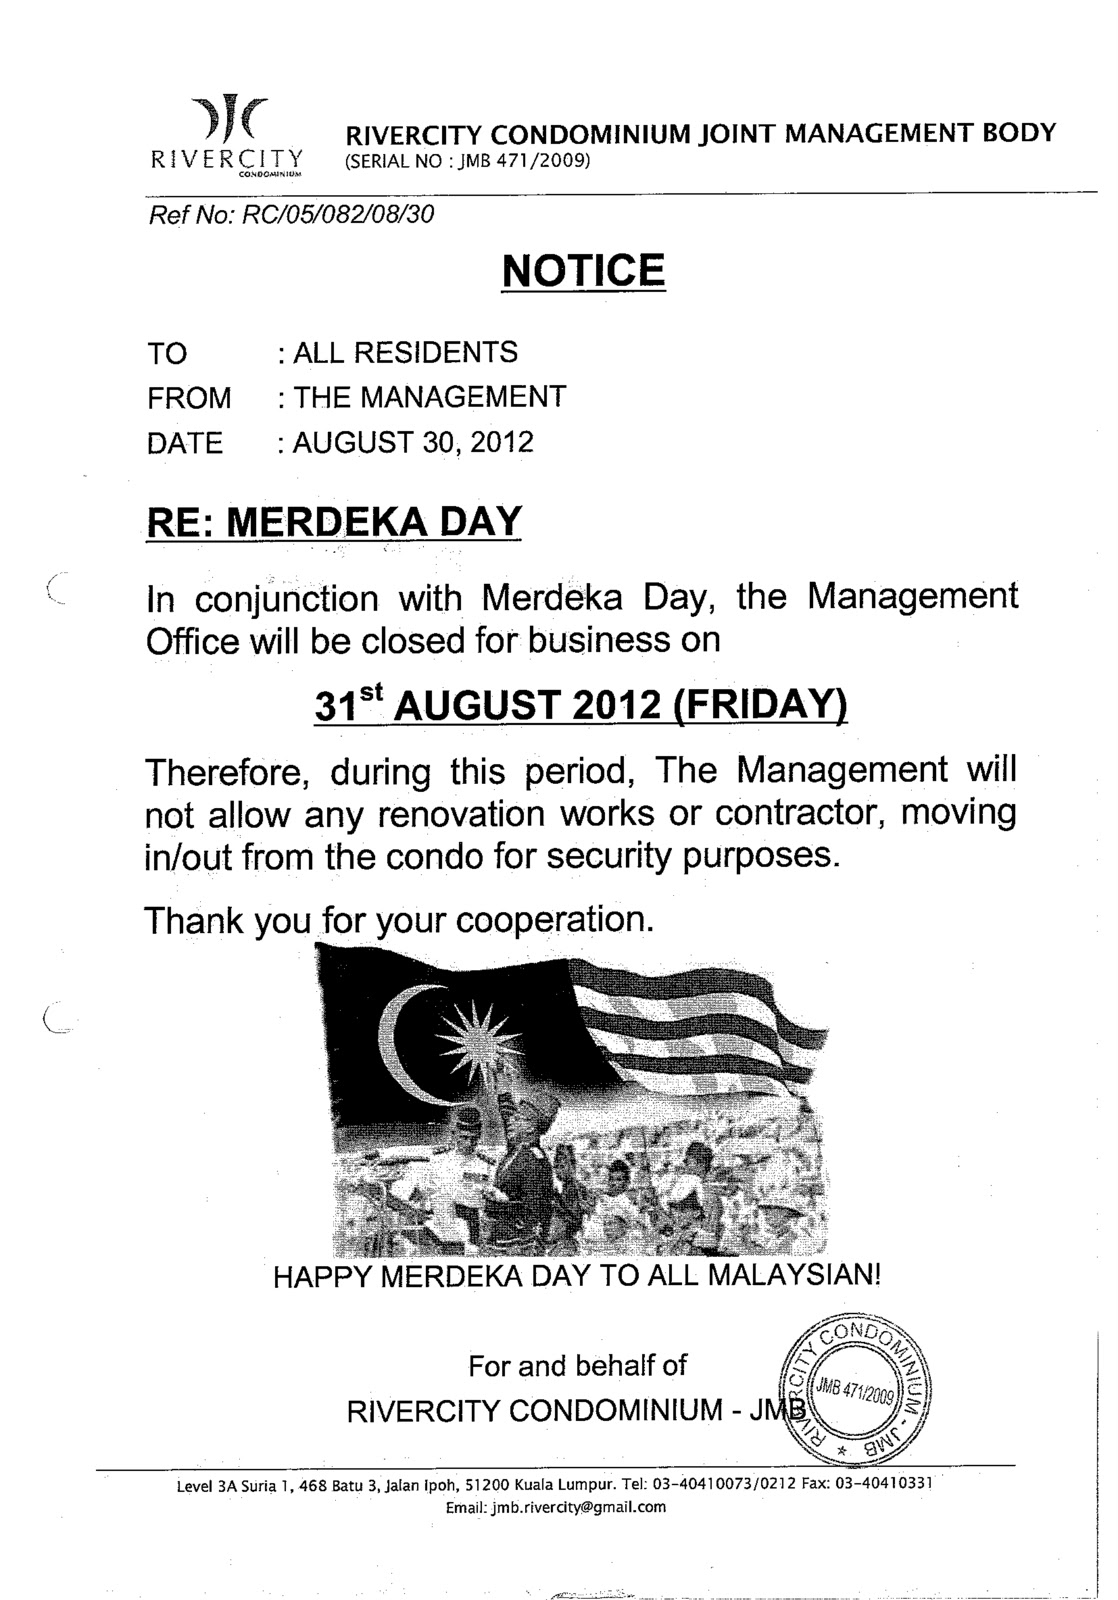 MyRiverCity: OFFICE CLOSE FOR MERDEKA DAY